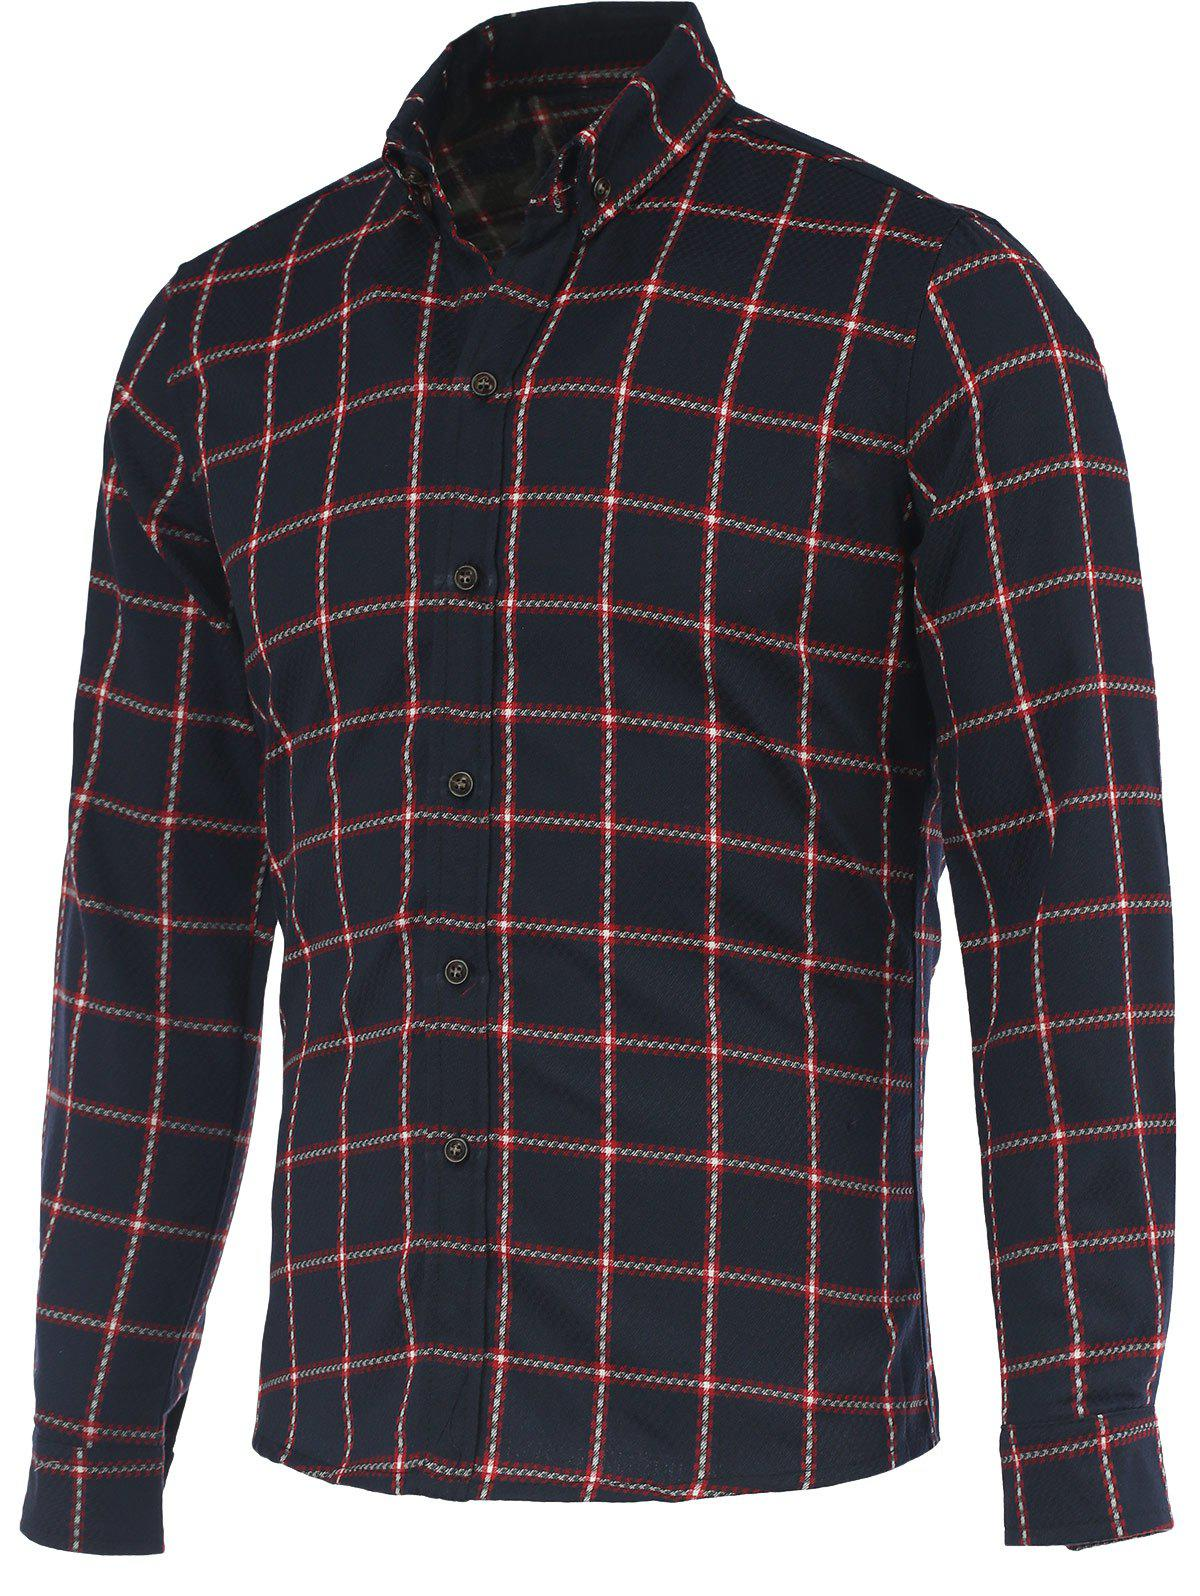 Elegant Checked Turn-Down Collar Long Sleeves Shiirt For Men - RED 5XL